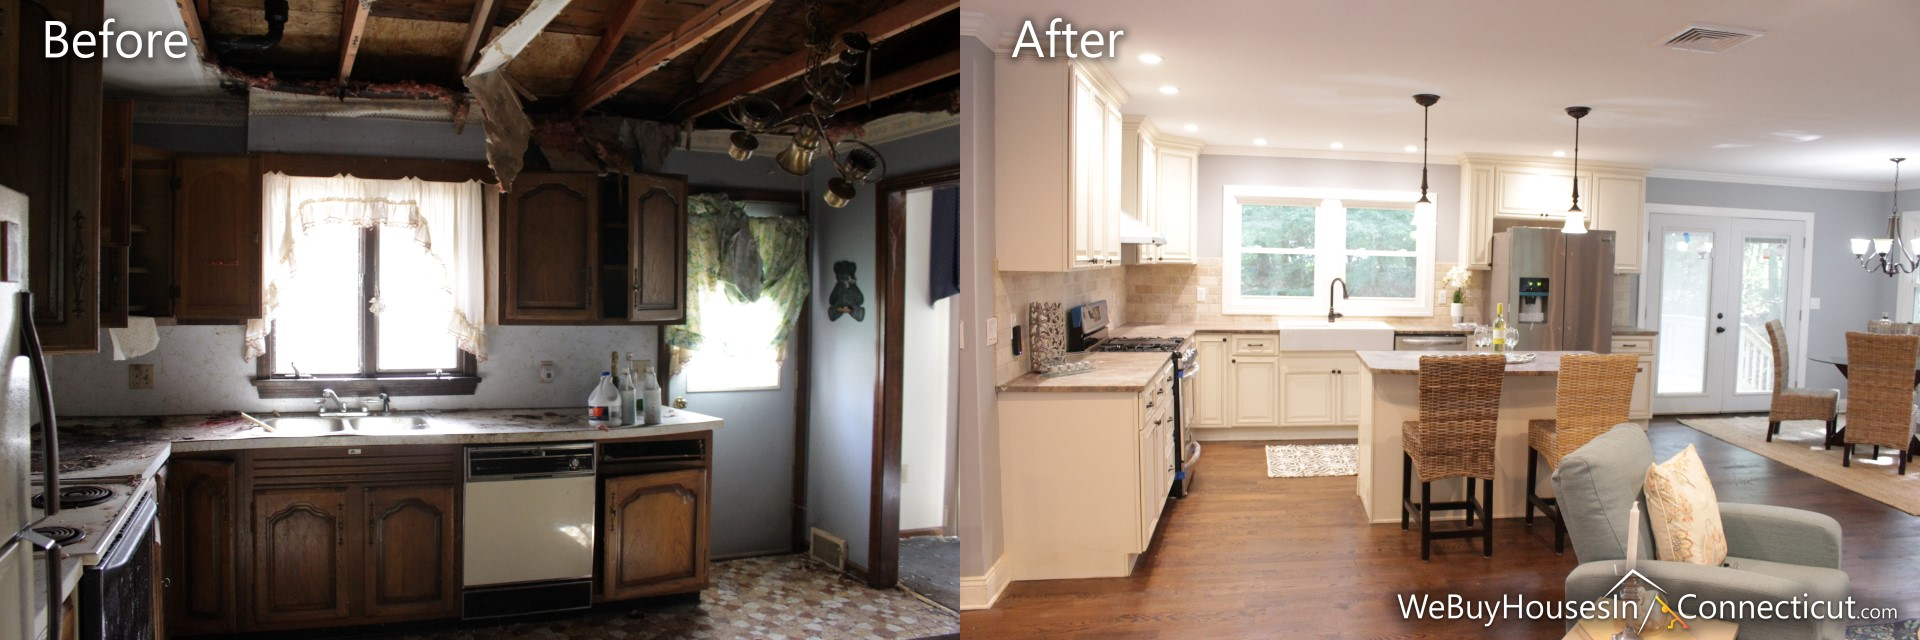 Sell My House Fast Before And After Rehab